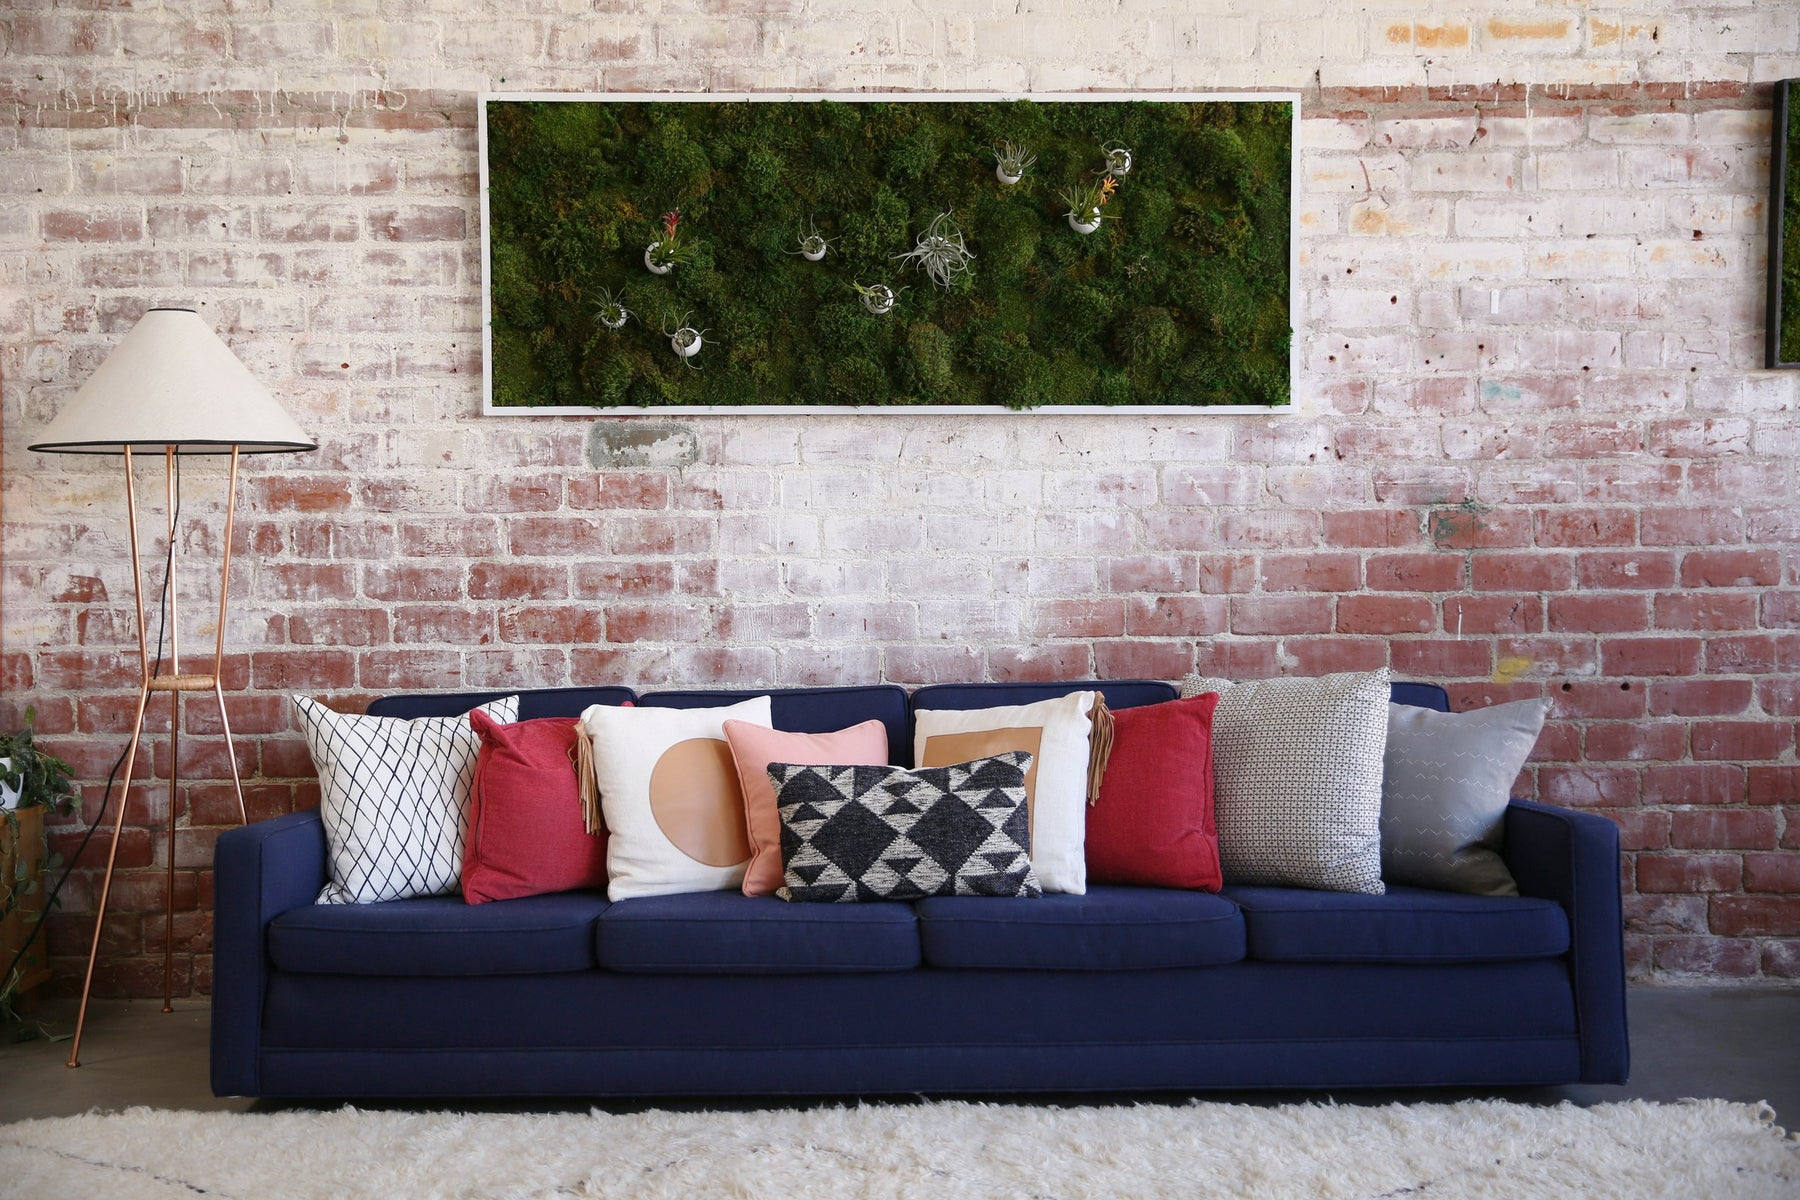 One of kelley's natural moss art pieces hanging on a distressed brick wall above a blue couch covered in many pillows